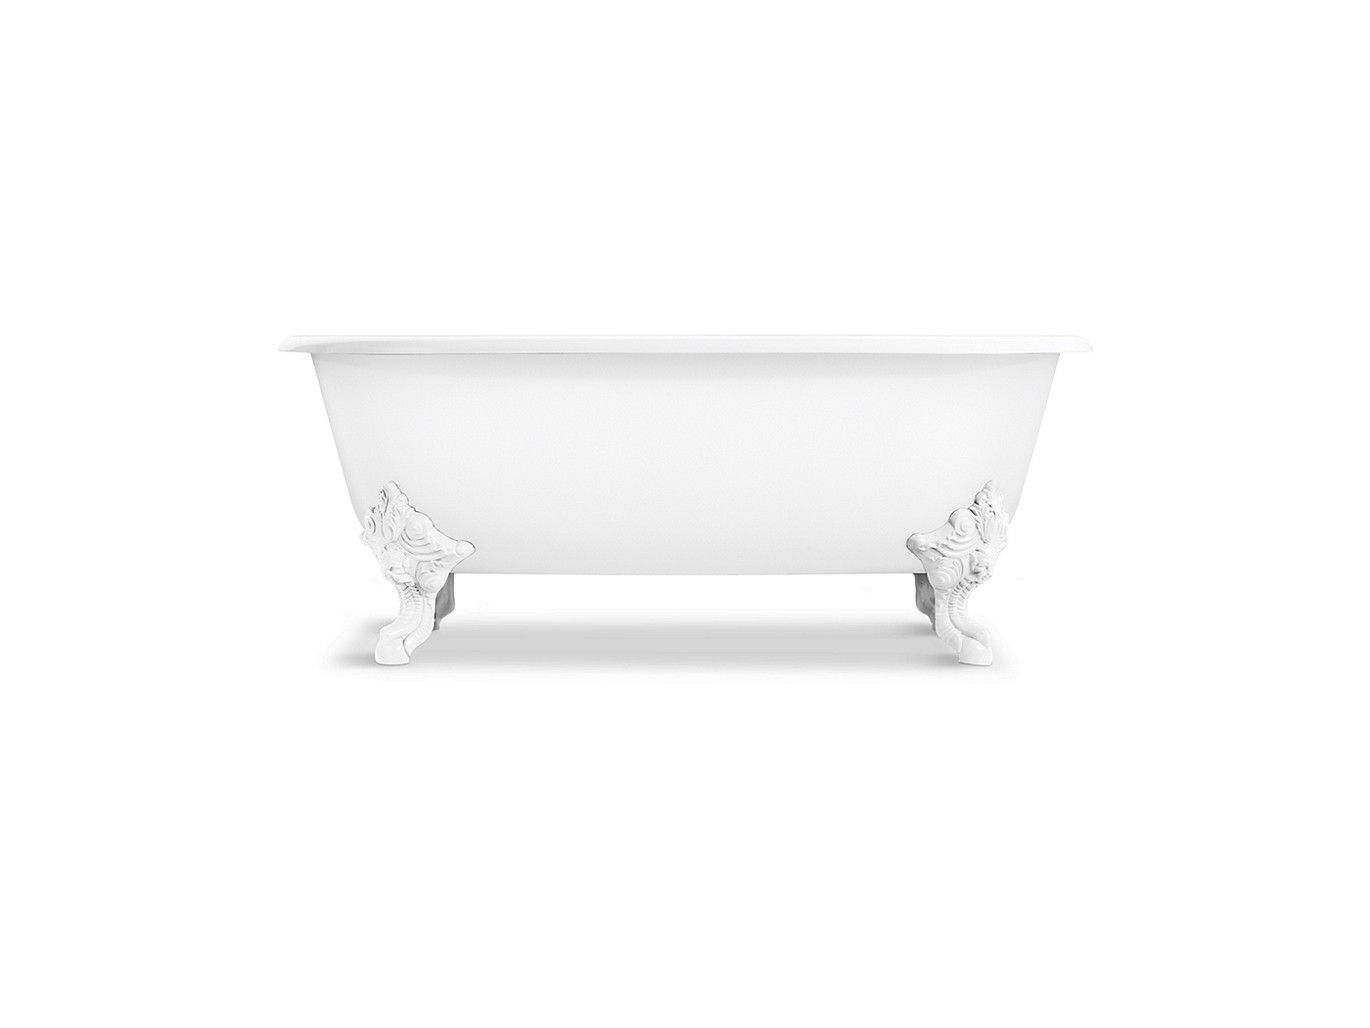 Freestanding Claw Foot Bathtub with White Exterior